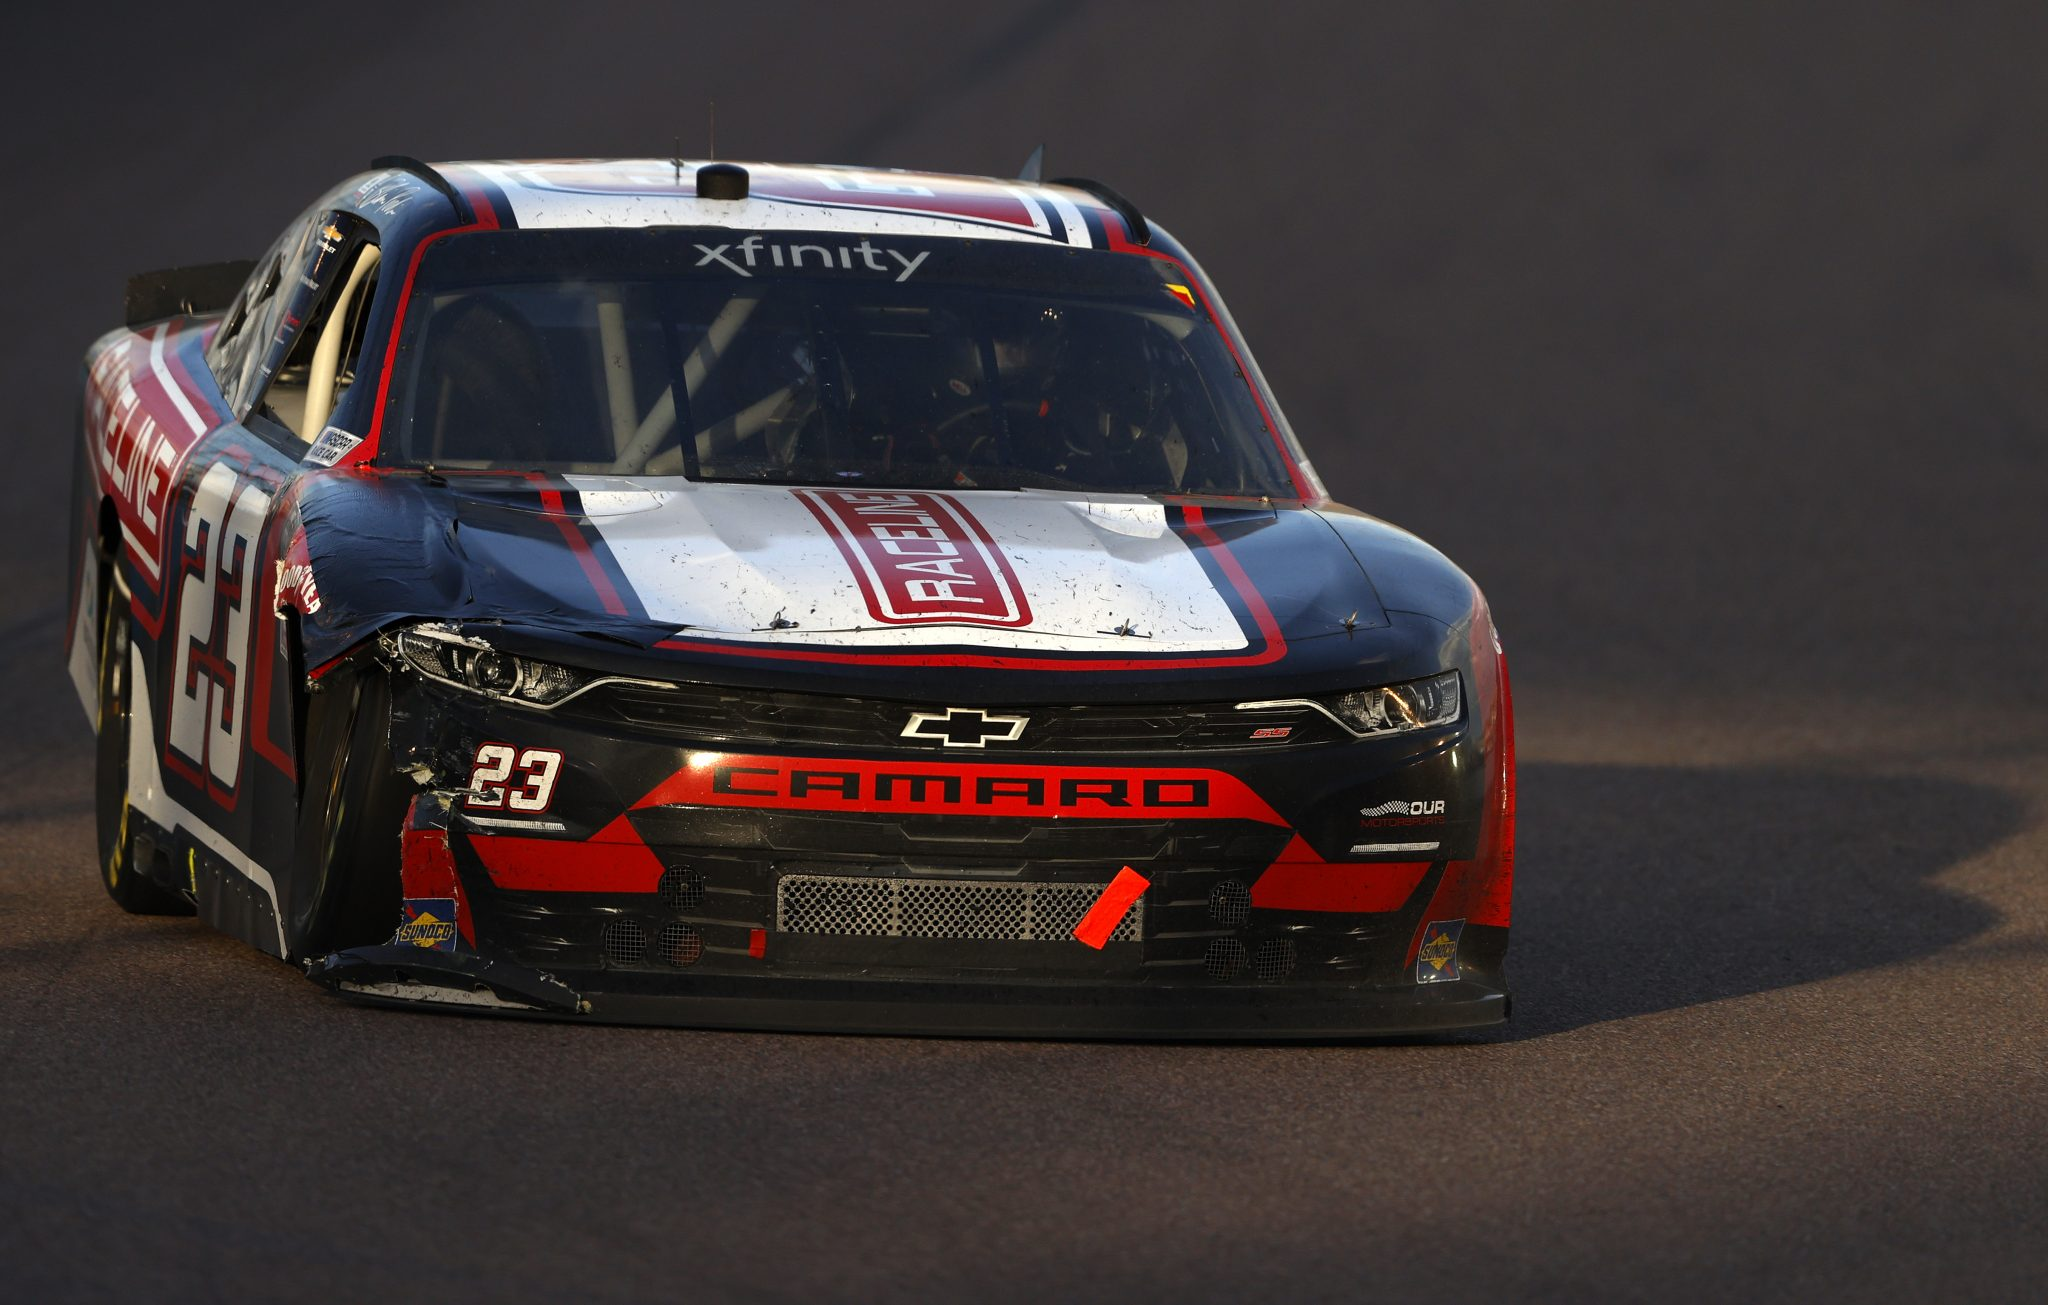 AVONDALE, ARIZONA - MARCH 13: Blaine Perkins, driver of the #23 Raceline Chevrolet, drives during the NASCAR Xfinity Series Call 811 Before You Dig 200 presented by Arizona 811 at Phoenix Raceway on March 13, 2021 in Avondale, Arizona. (Photo by Christian Petersen/Getty Images) | Getty Images